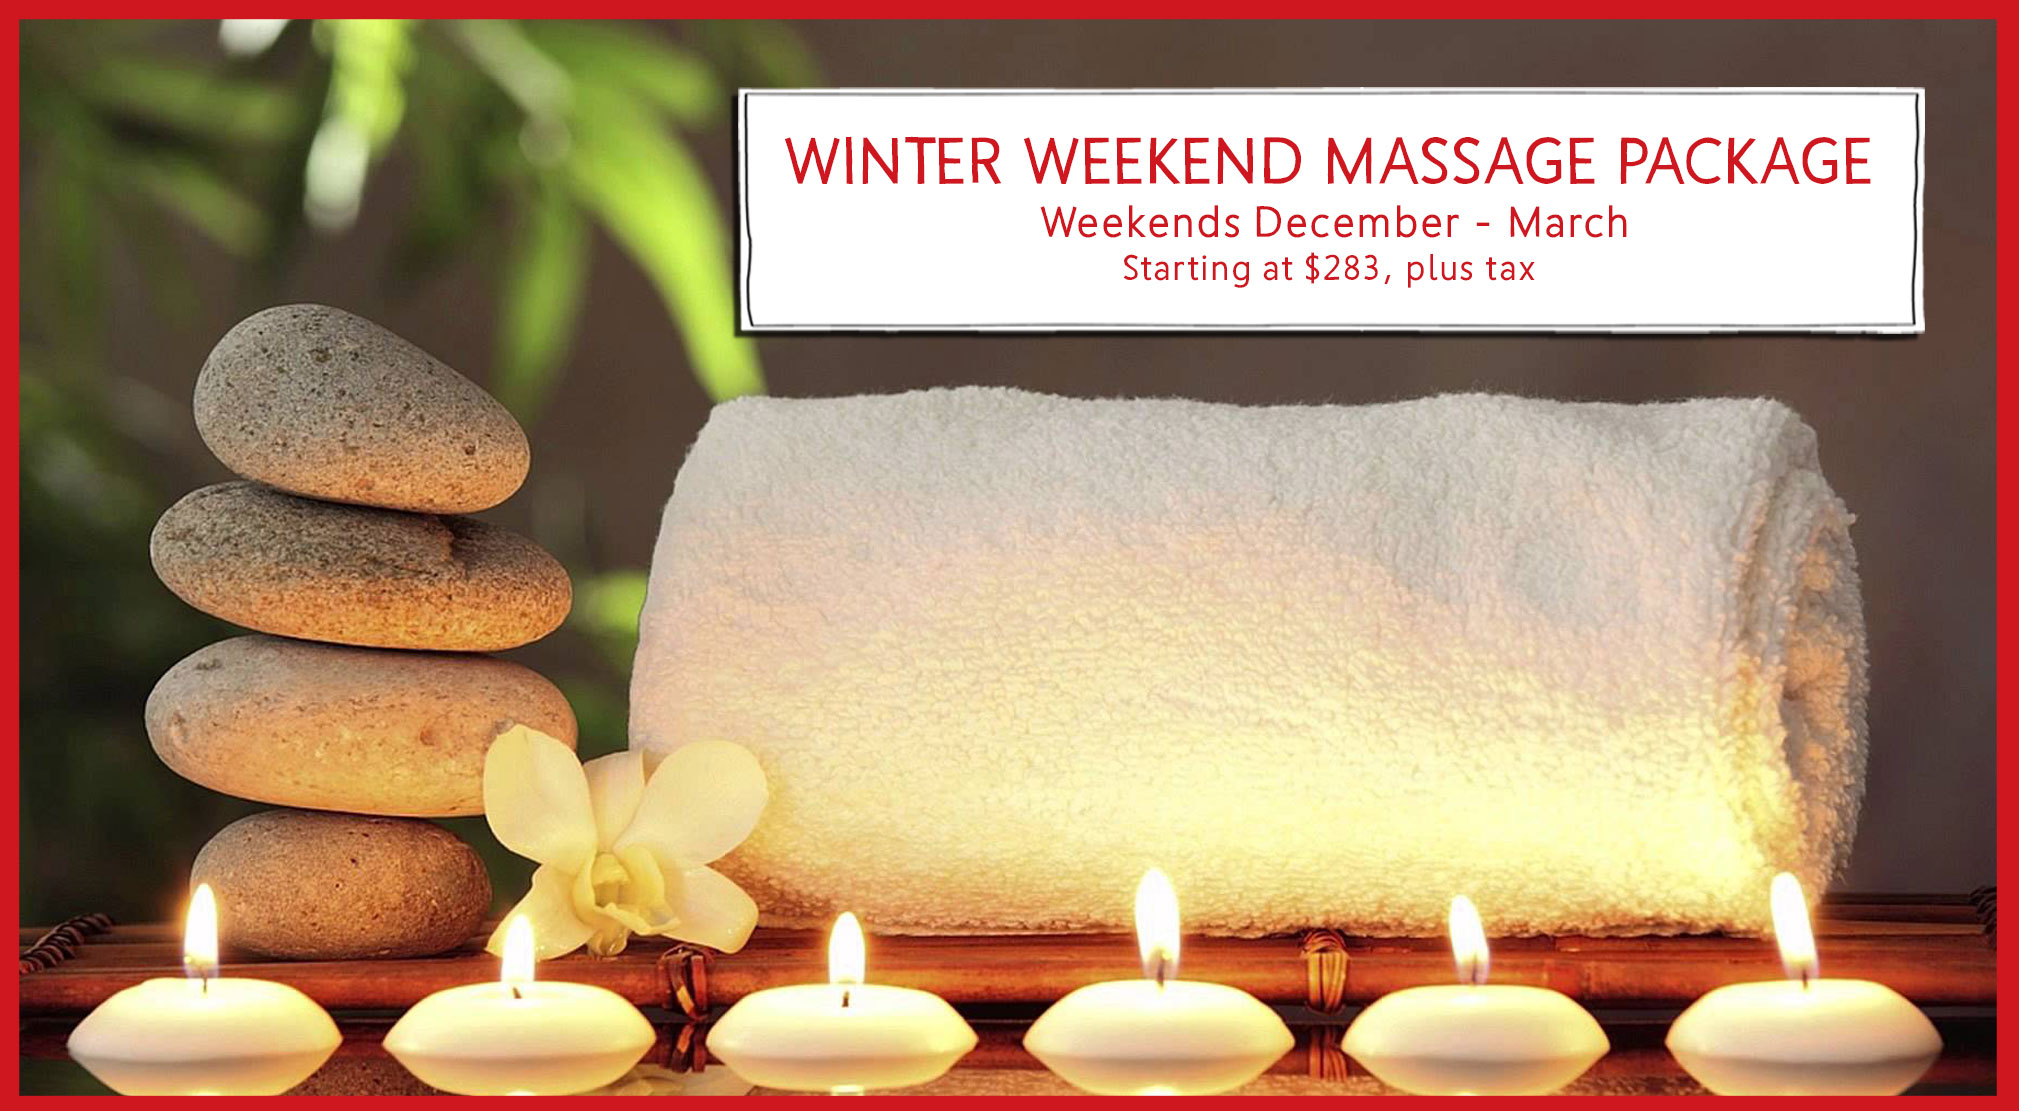 Winter Weekend Massage Package at Race Brook Lodge